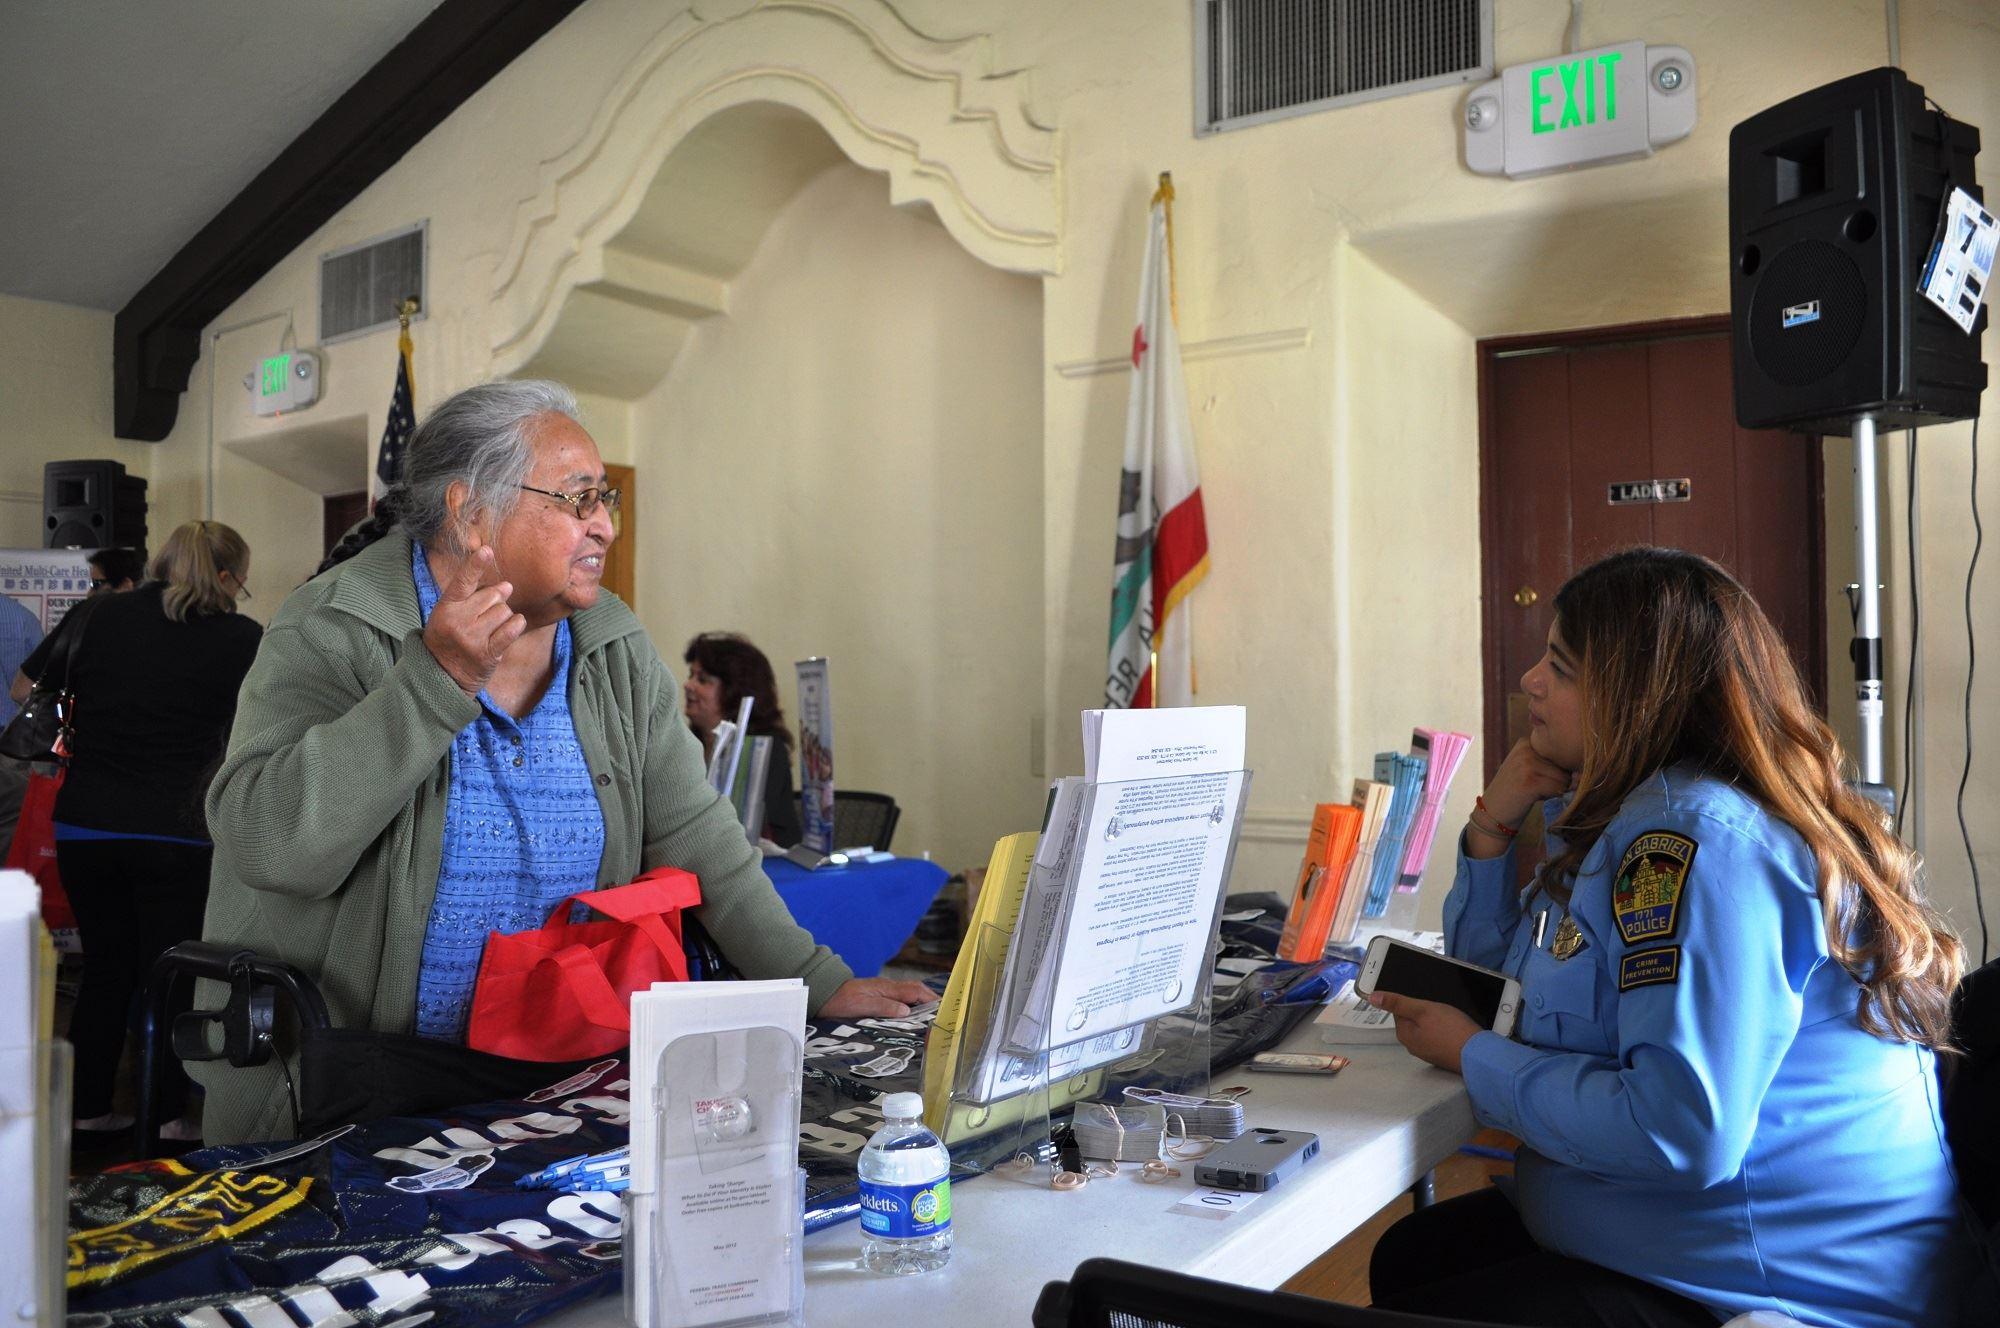 Community Services to host Community Health & Wellness Fair